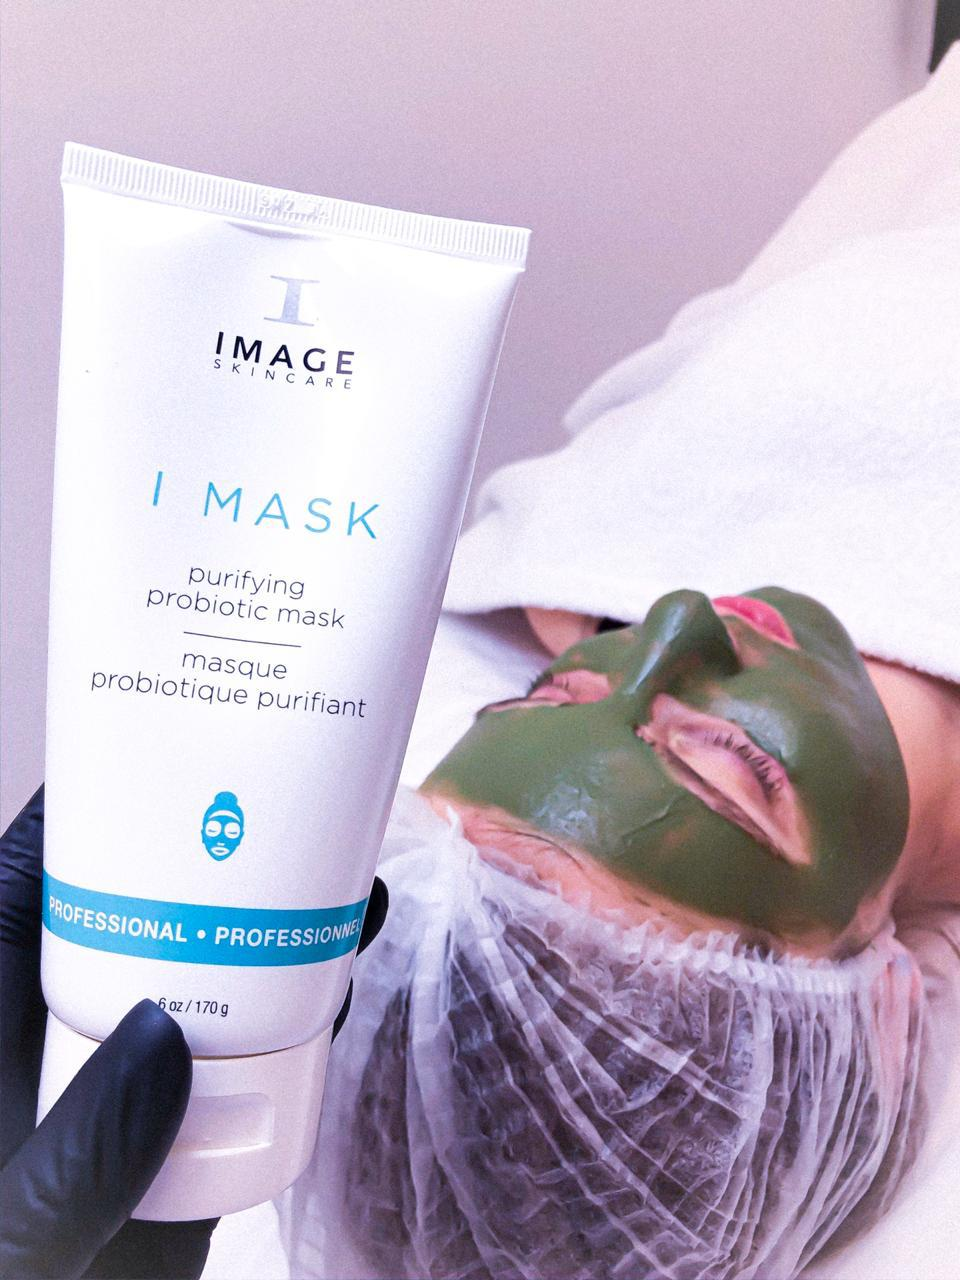 Очищающая маска с пробиотиками I MASK purifying probiotic mask